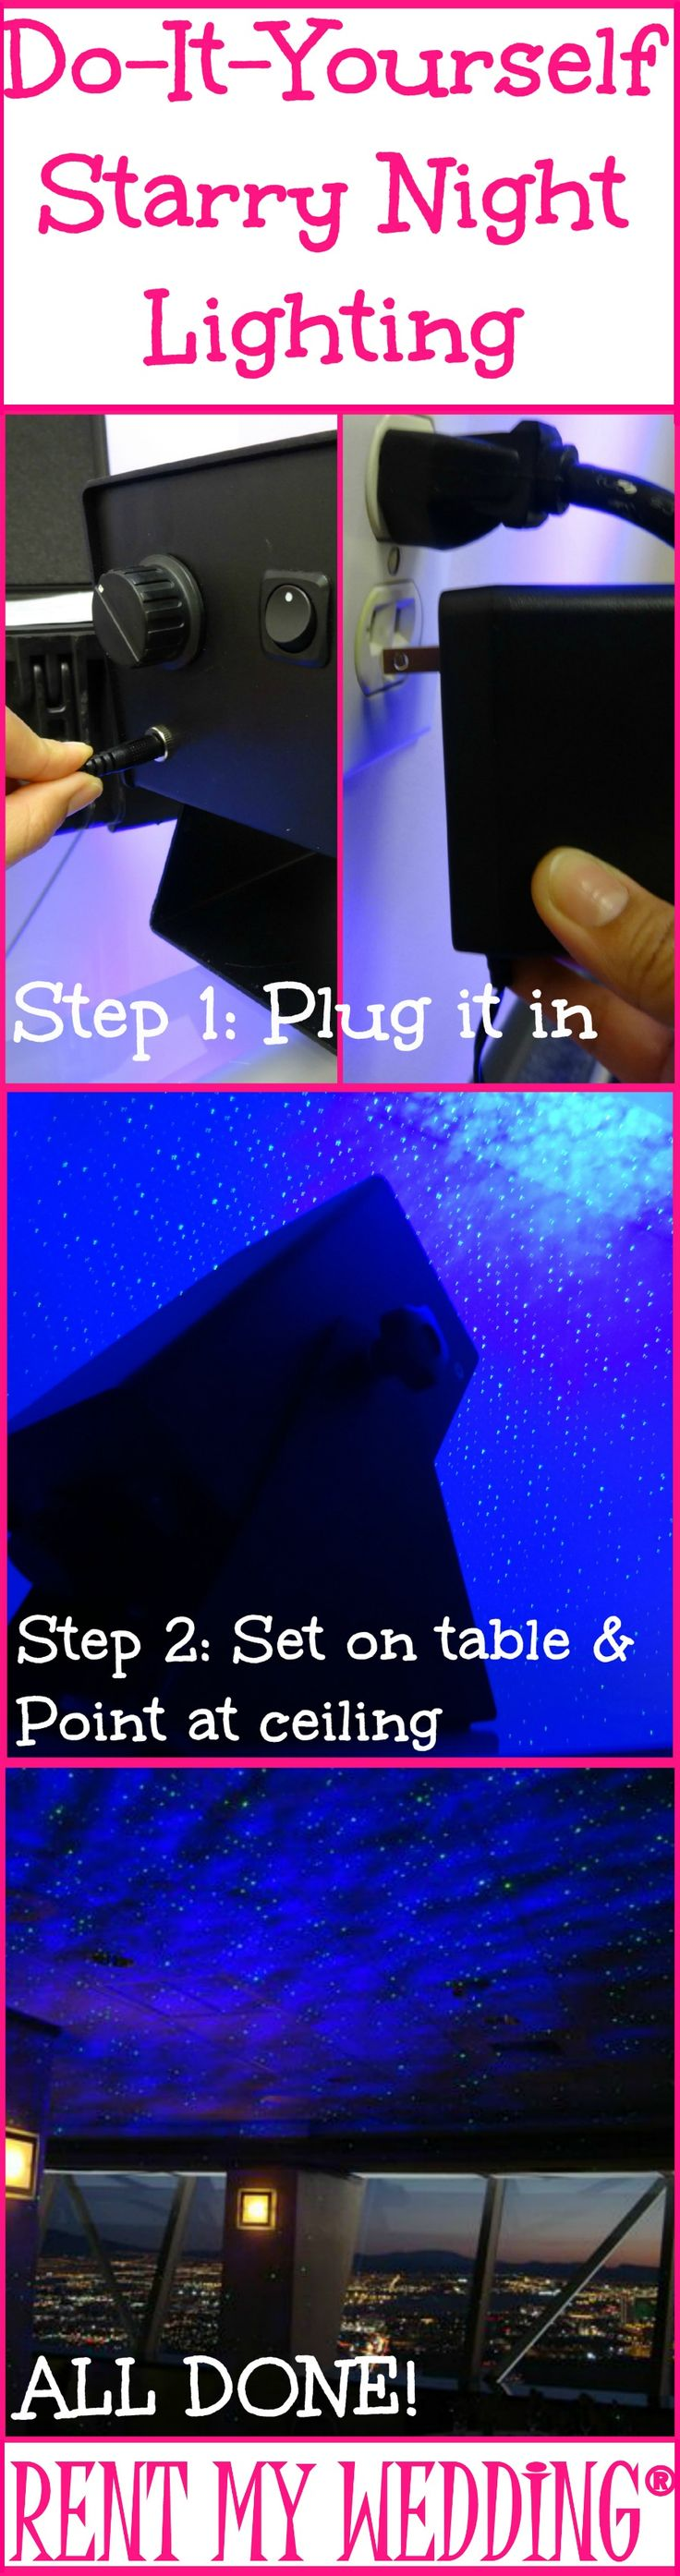 29 best starry night lighting images on pinterest marriage do it yourself starry night lighting in 2 easy steps just plug it solutioingenieria Images